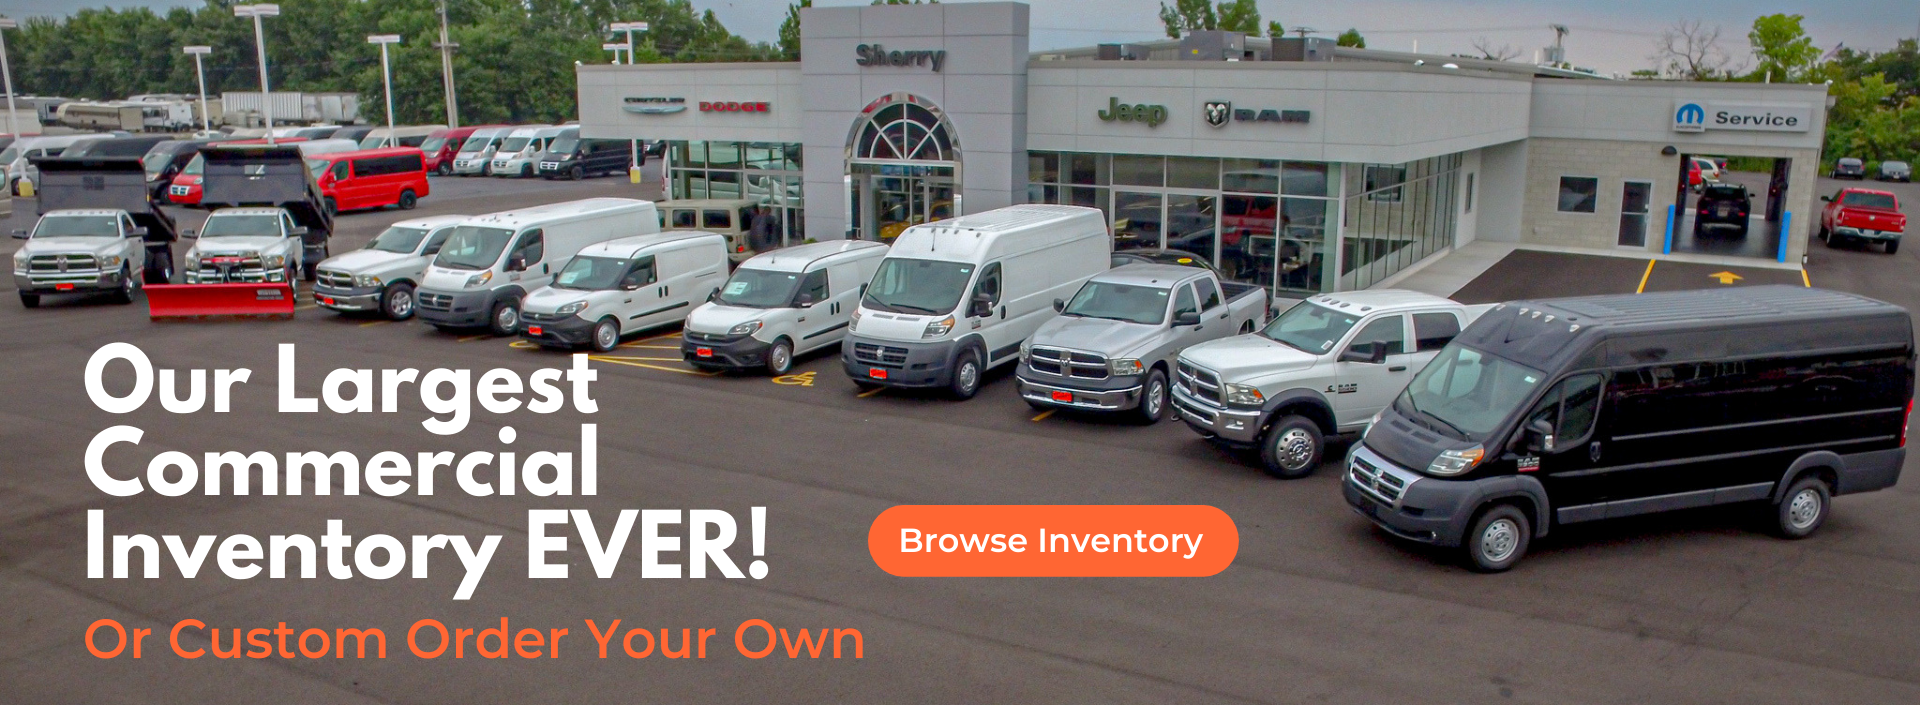 Our Largest Commercial Inventory Ever!